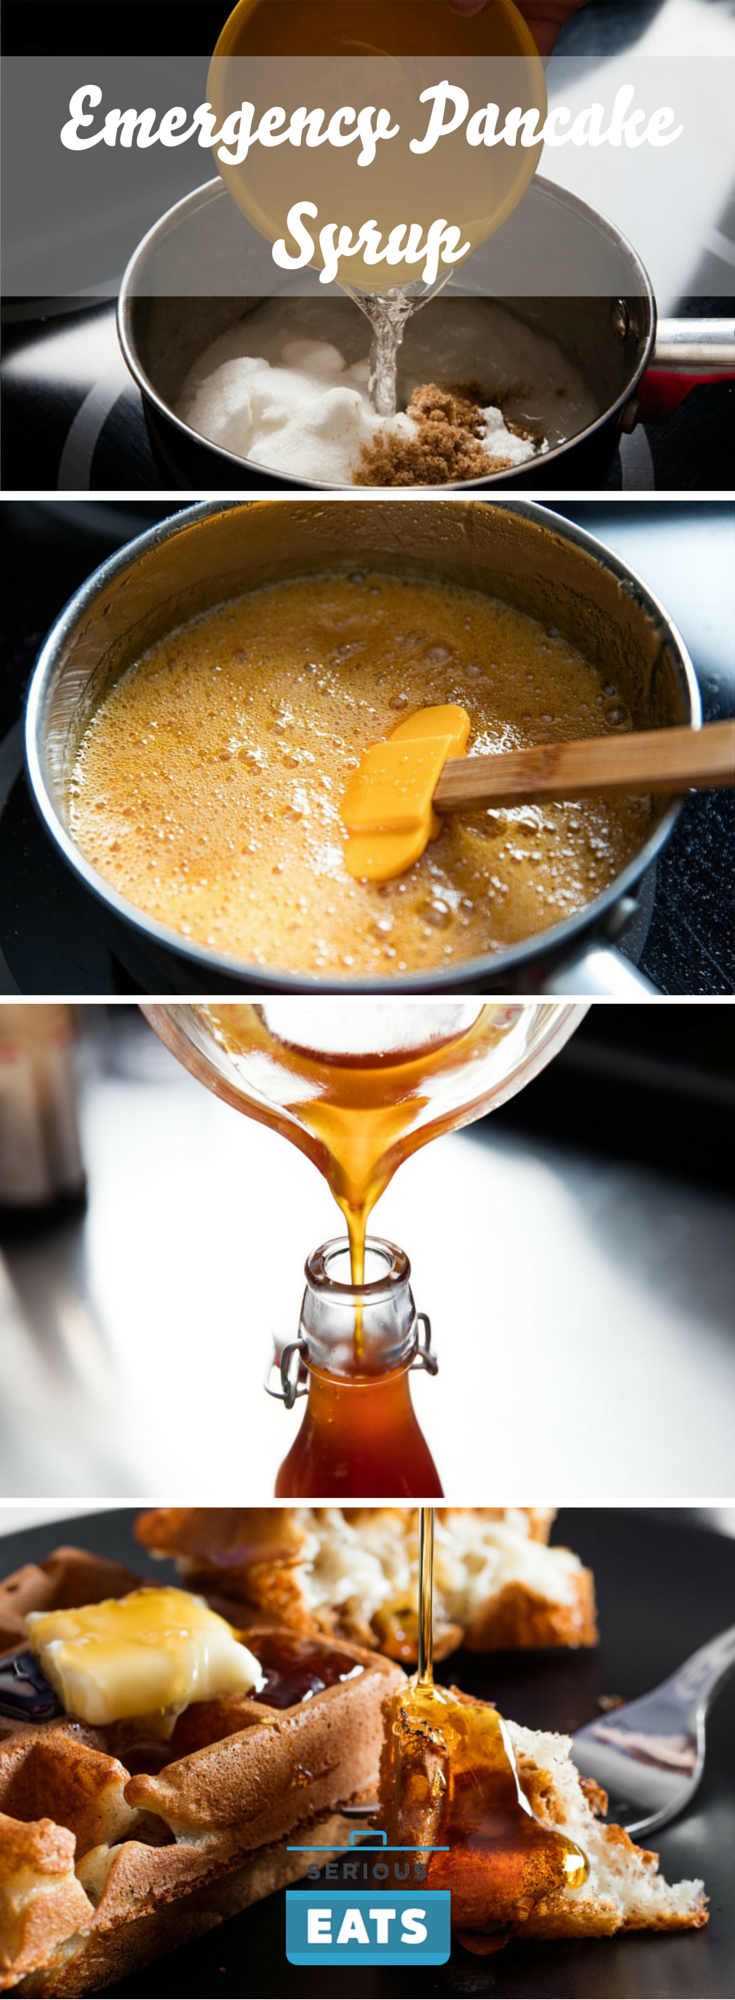 Homemade syrup is easy to make and so delicious this recipe turns homemade syrup is easy to make and so delicious this recipe turns out every time its buttery and thick and has a unique flavor twist ccuart Images